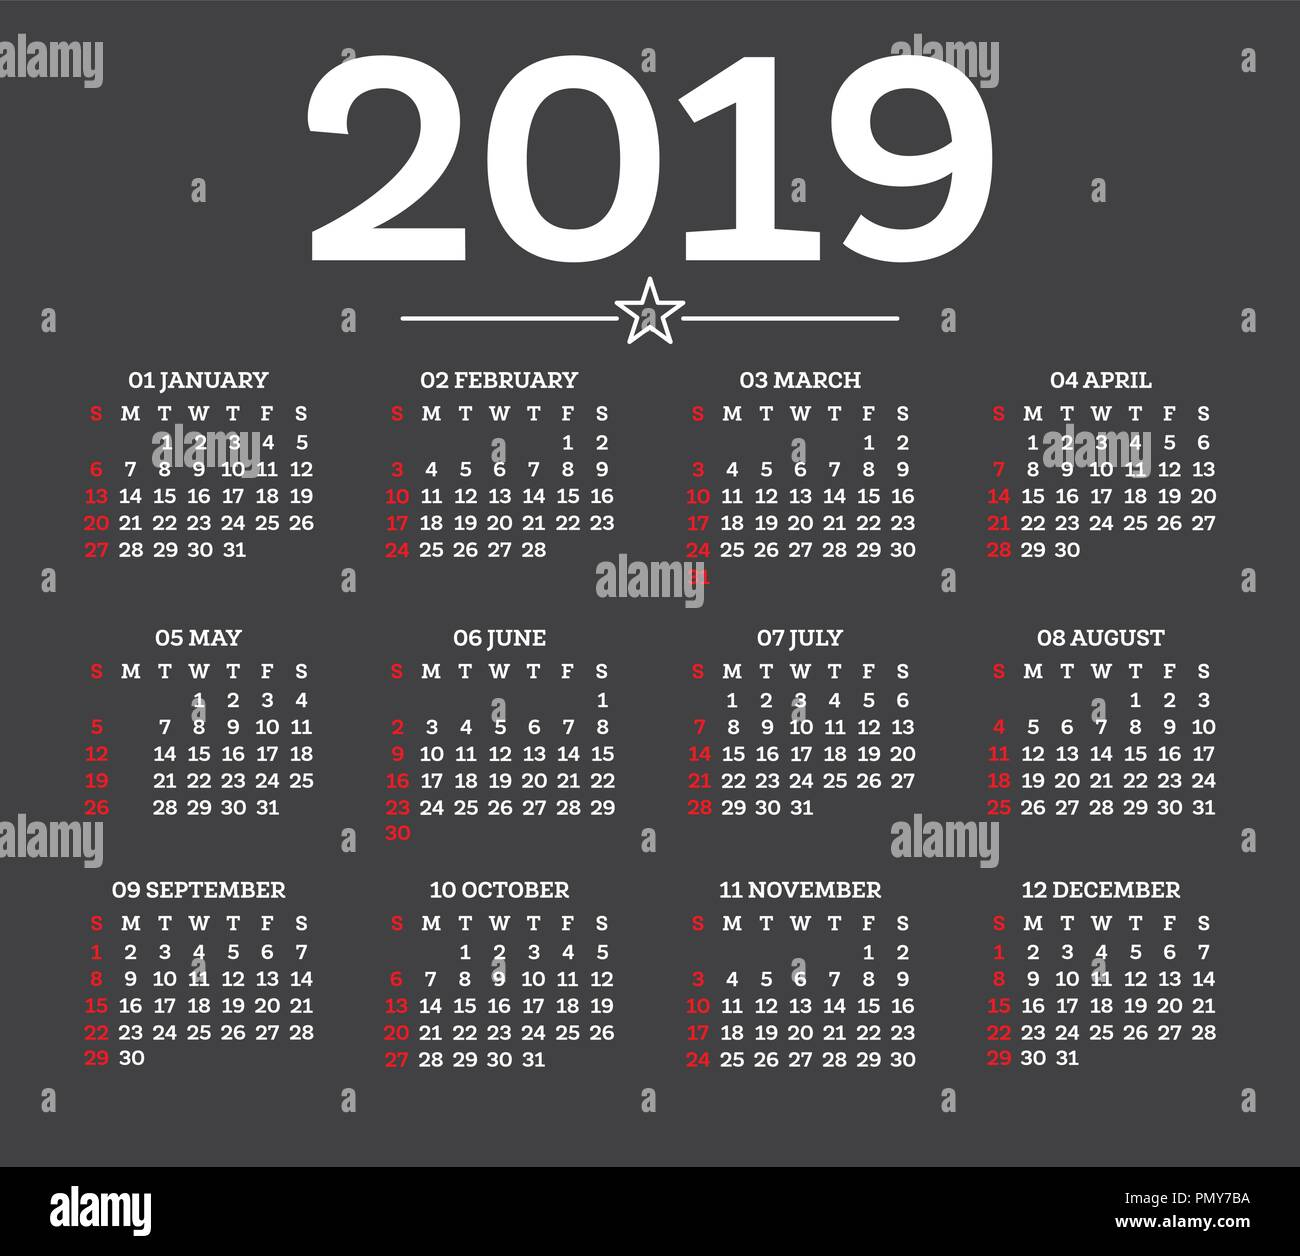 Simple 2019 Year Calendar Imágenes De Stock & Simple 2019